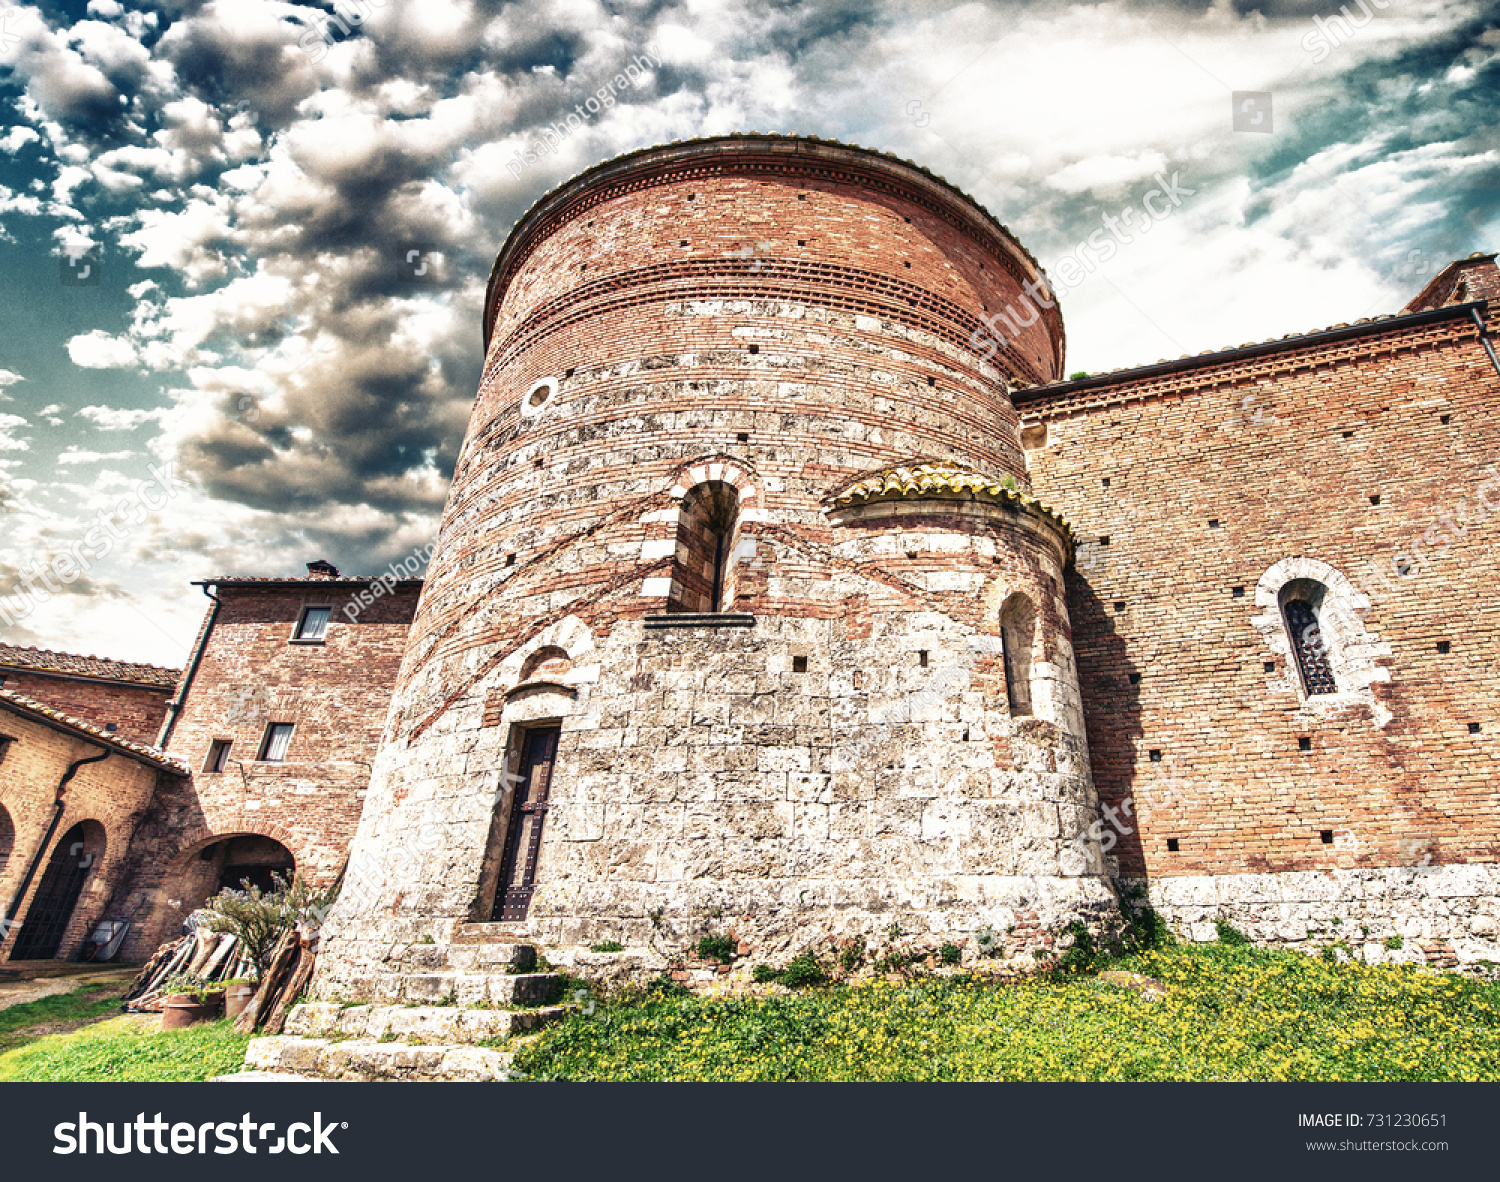 Ancient European Architecture And Landmarks